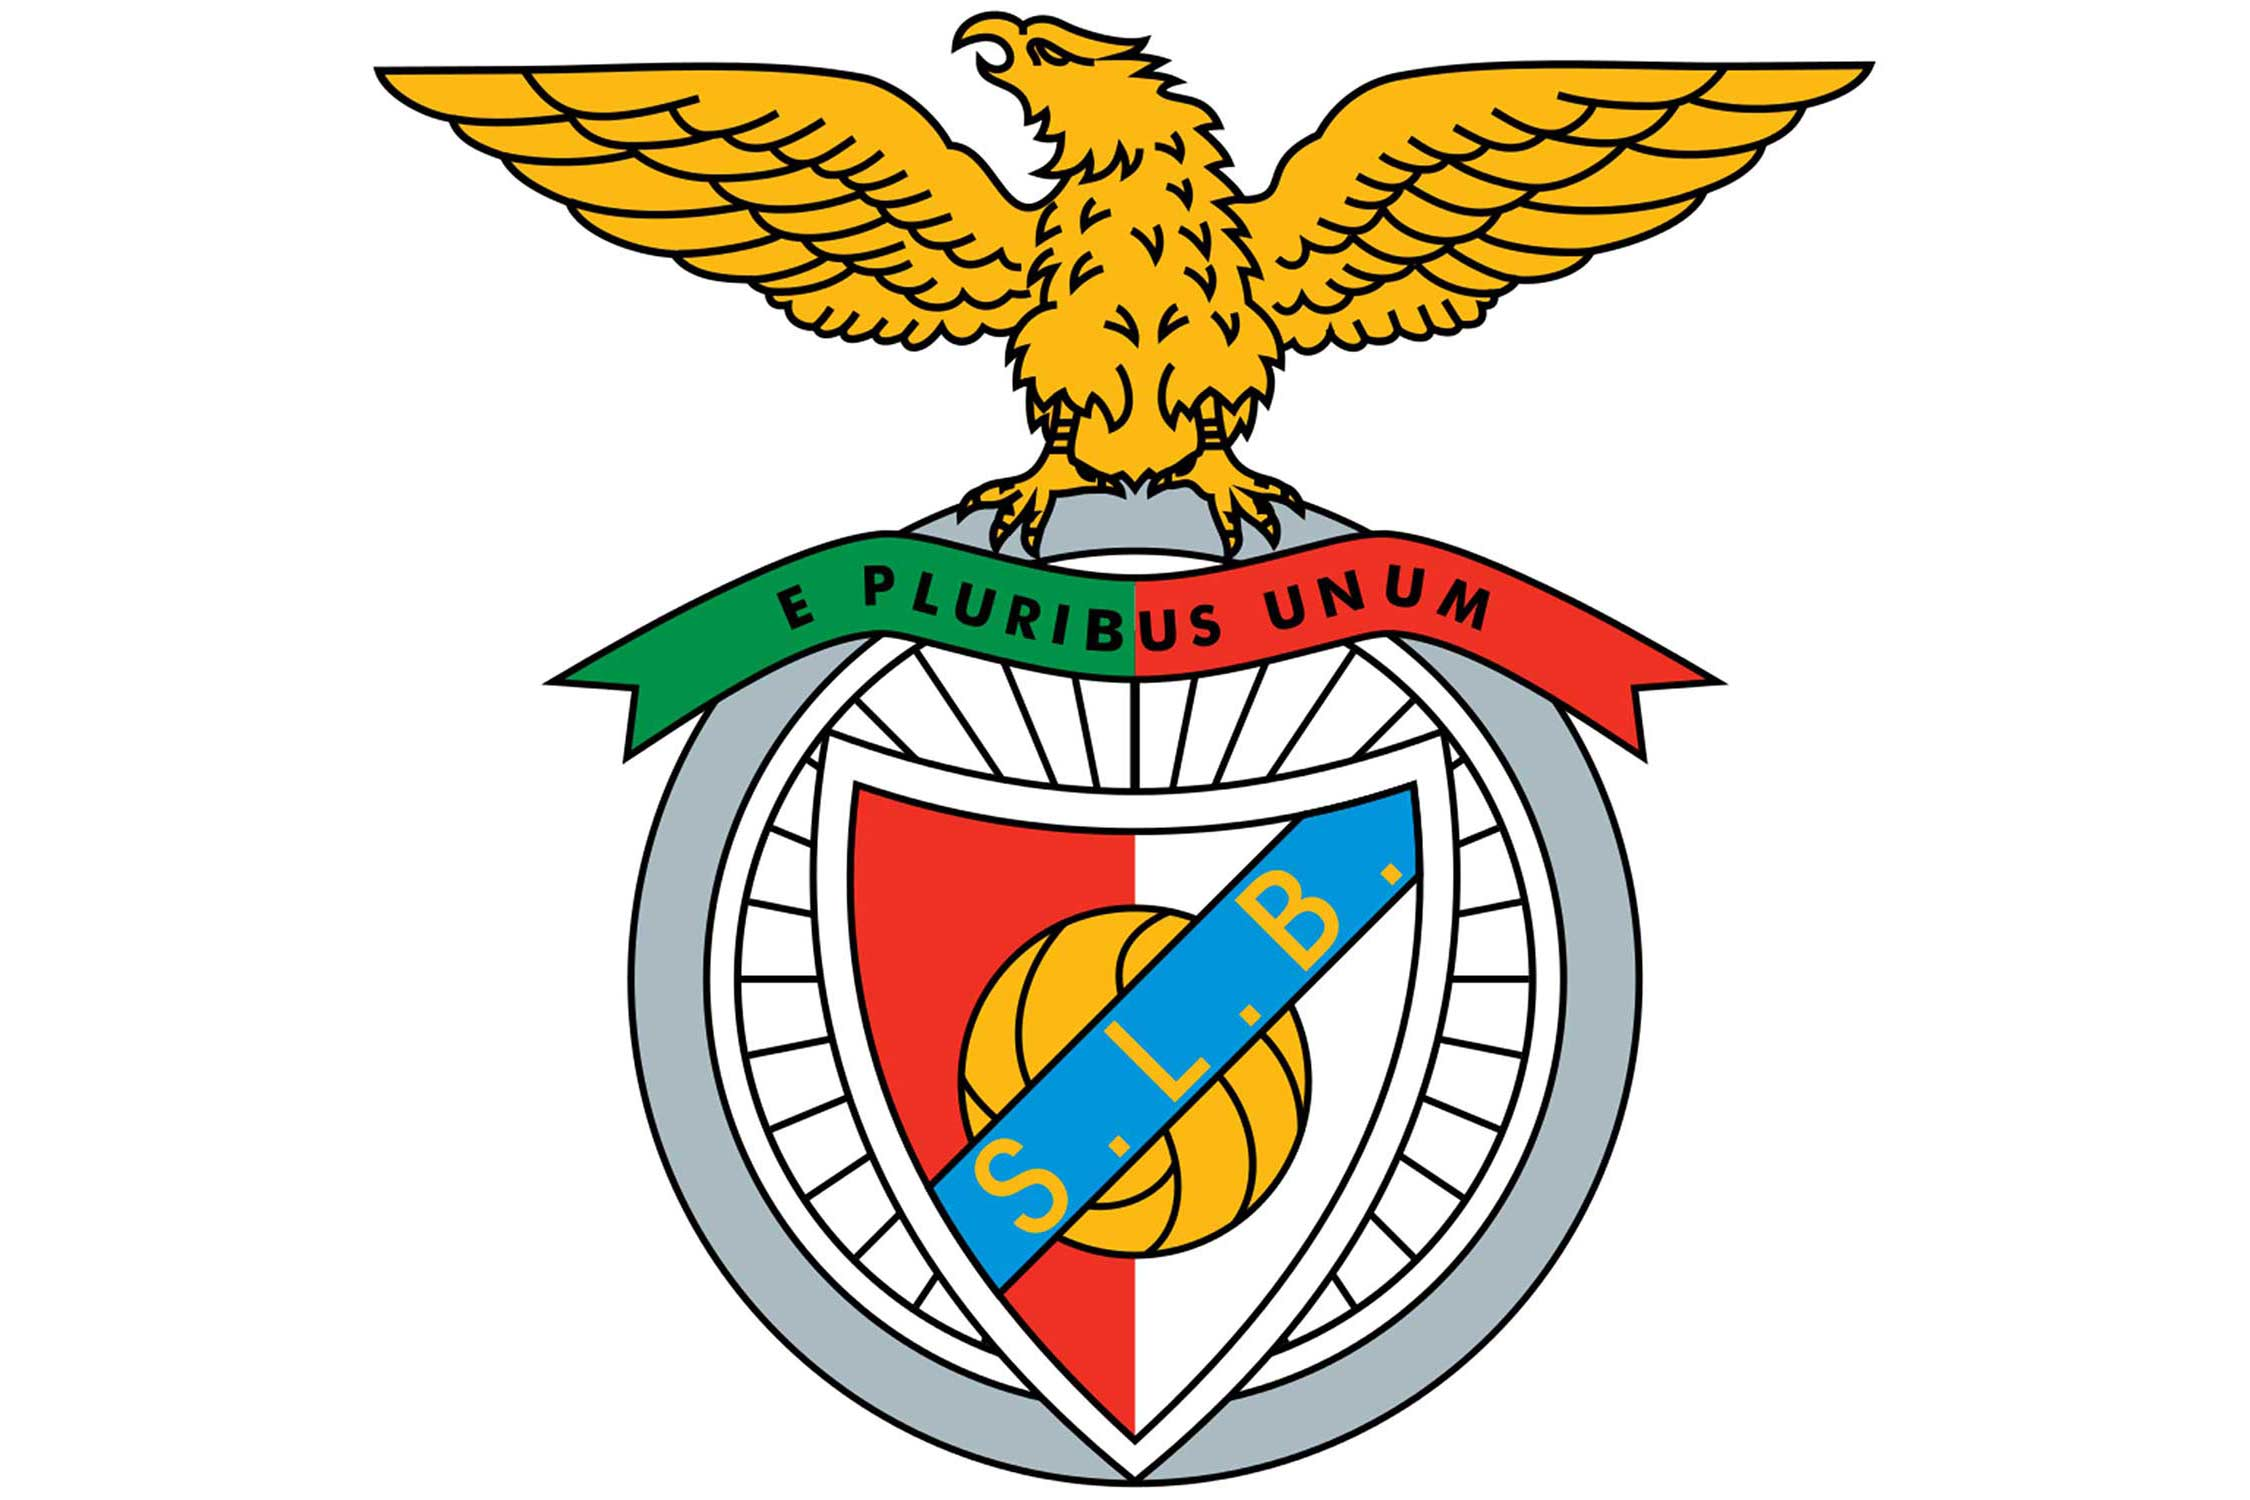 In the background of the crest of this Portuguese club is a bicycle wheel. That's because the club was initially founded as a cycling club.